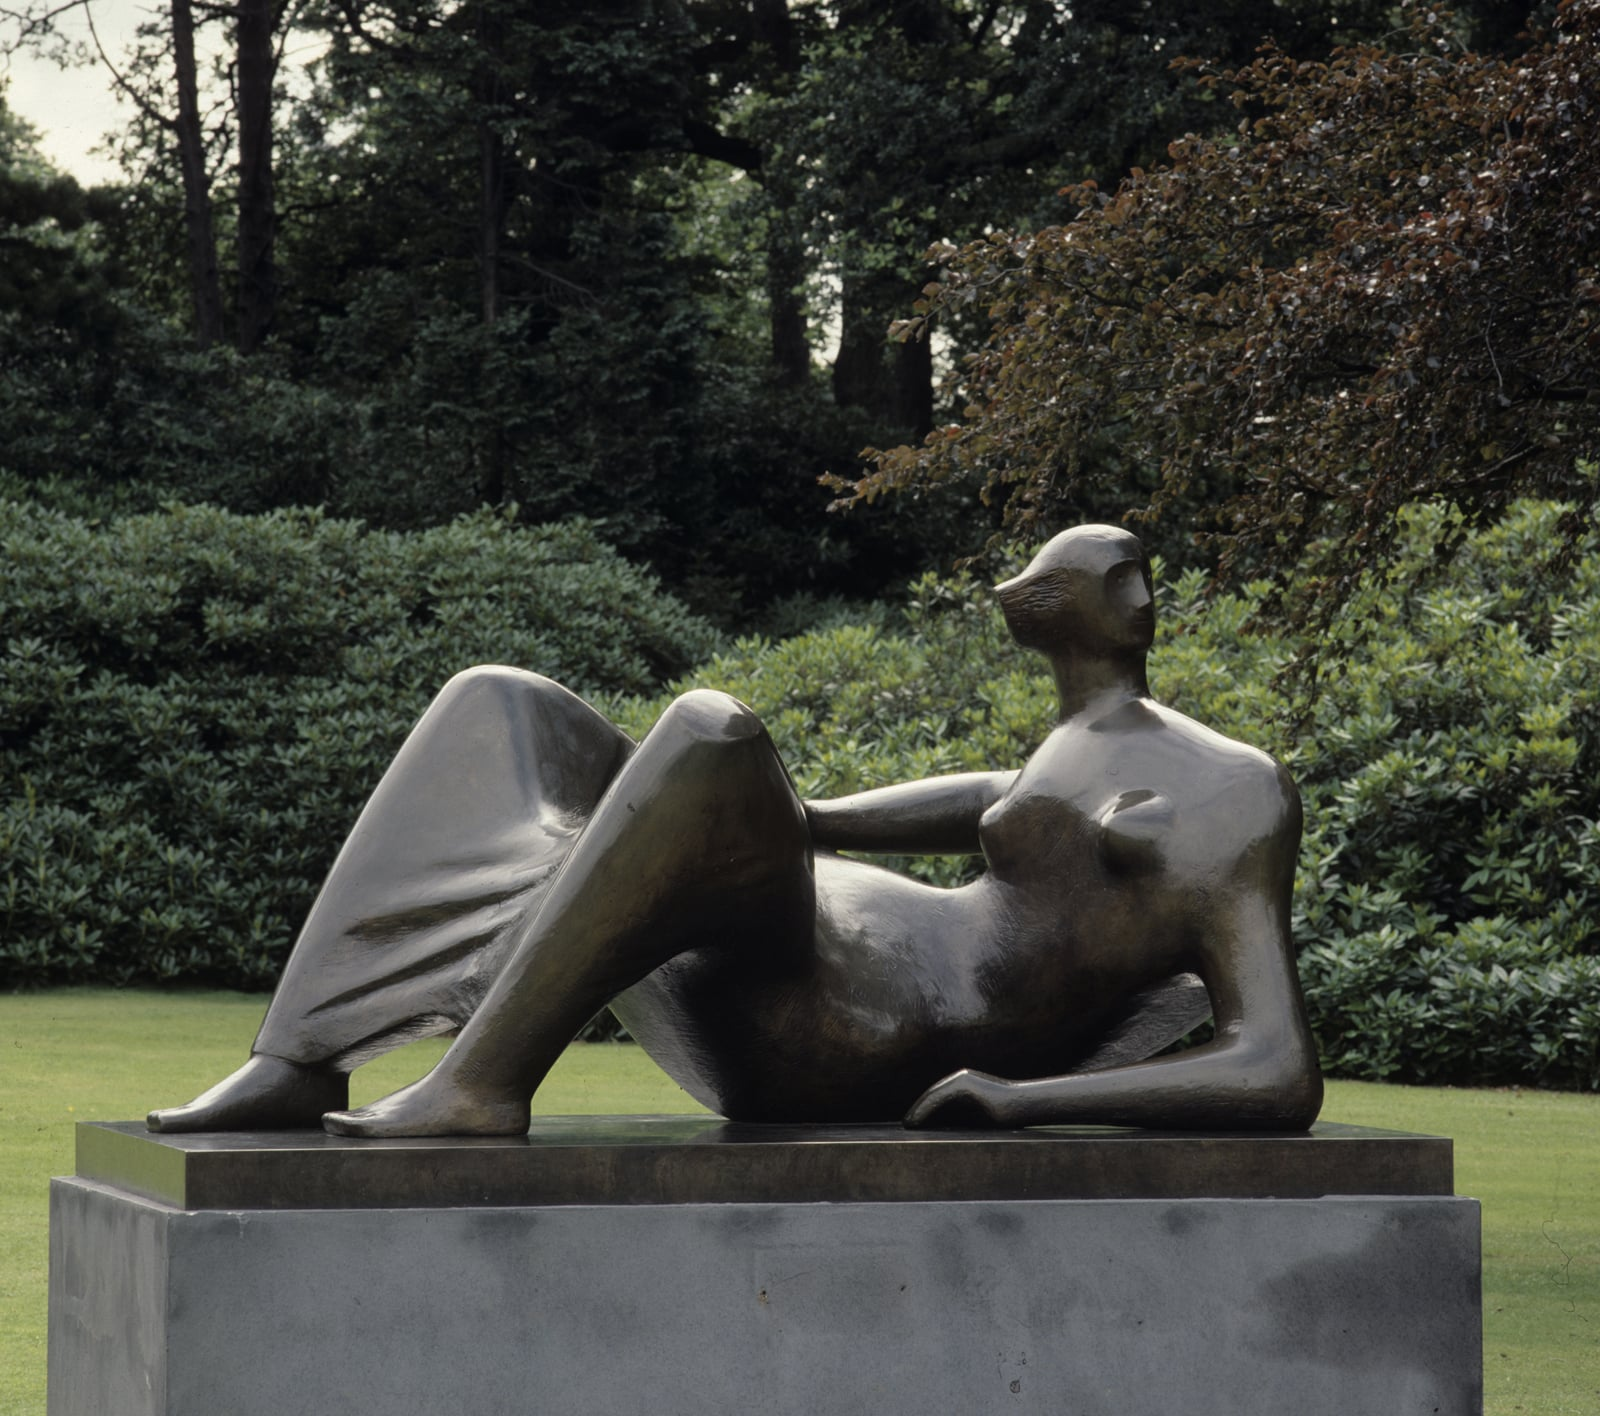 Henry Moore: Back to Land, Yorkshire Sculpture Park, free to all - Henry Moore, Reclining Figure Angles, 1979. Reproduced by permission of The Henry Moore Foundation